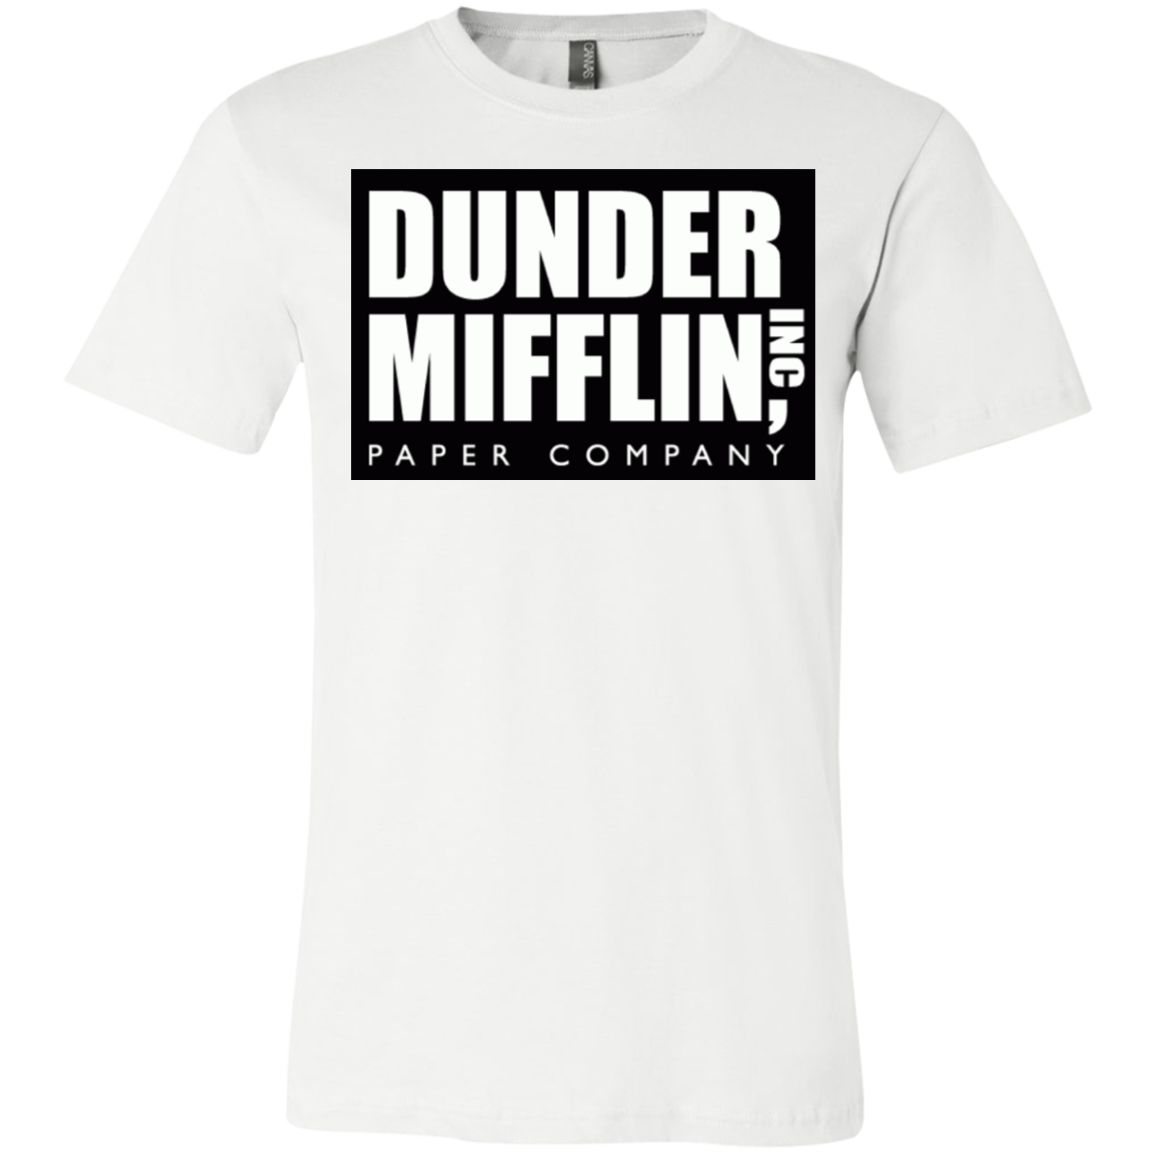 Dunder Mifflin 3001Y Bella + Canvas Youth Jersey Short Sleeve T-Shirt